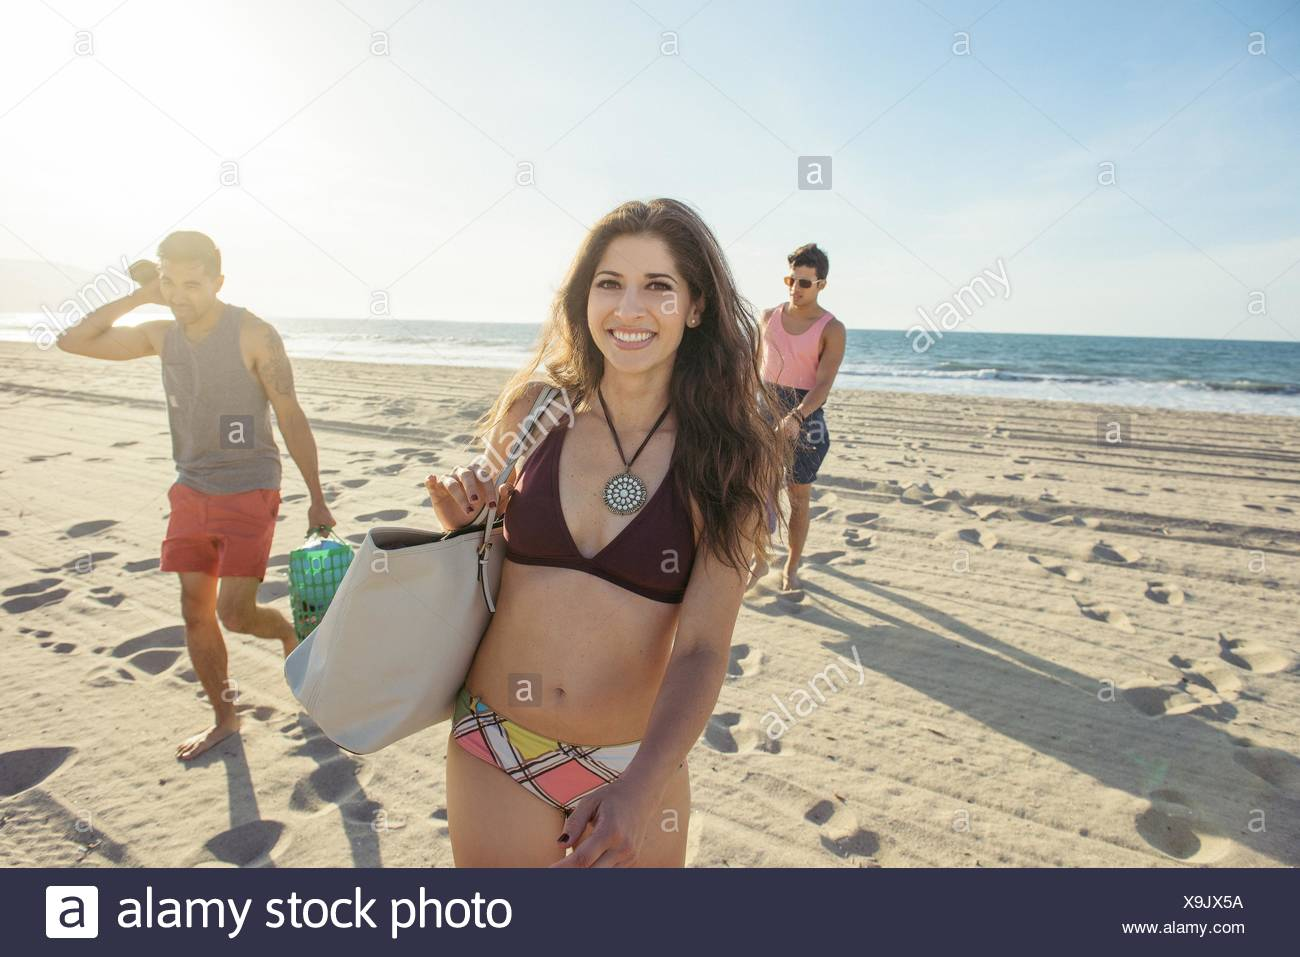 Group of friends walking on beach - Stock Image